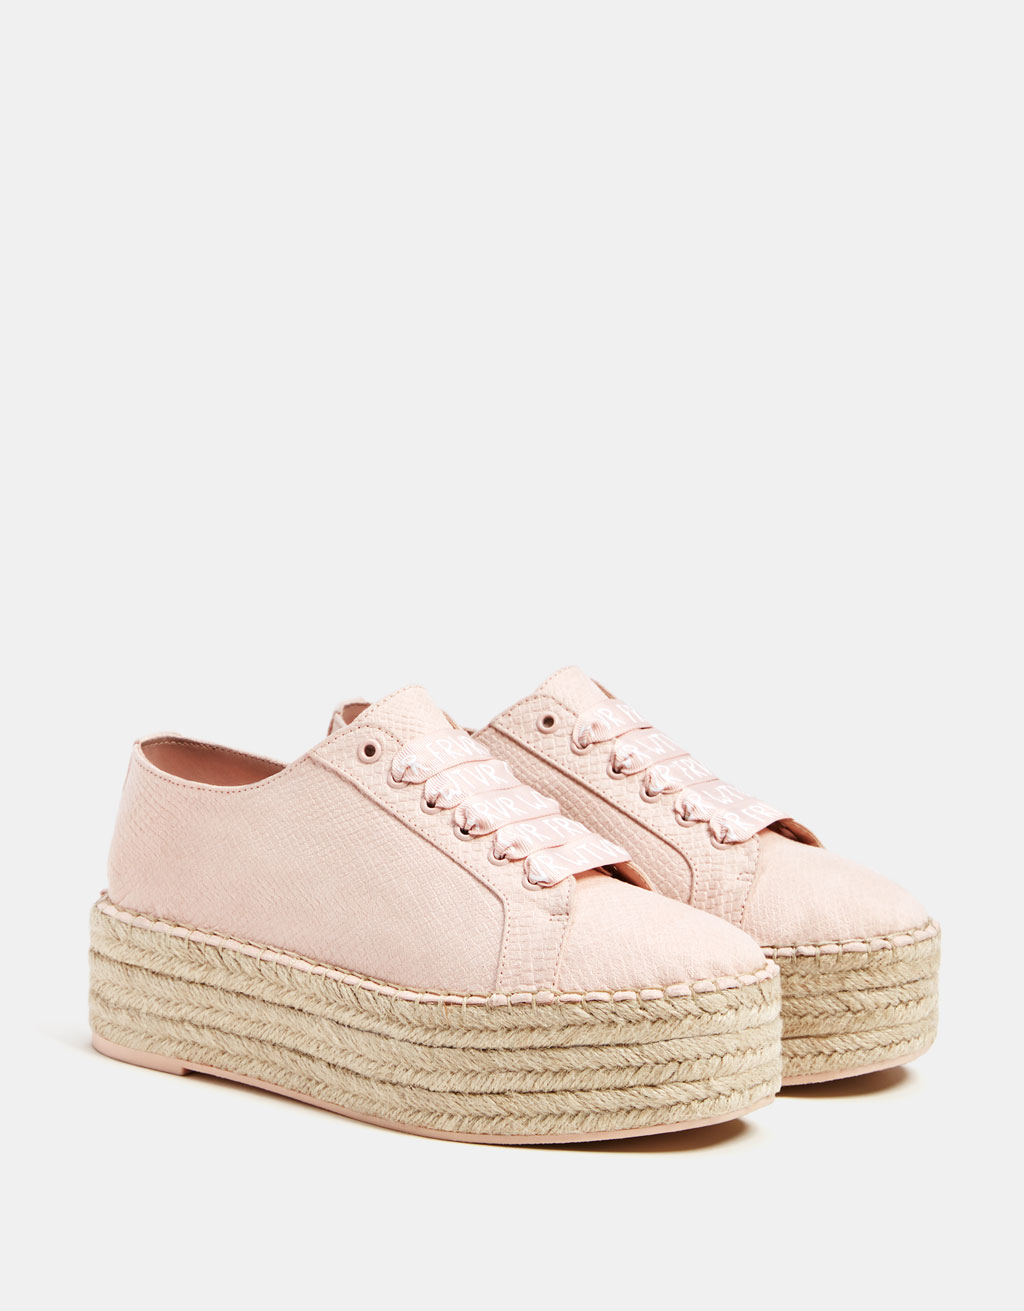 Embossed sneakers with jute platforms